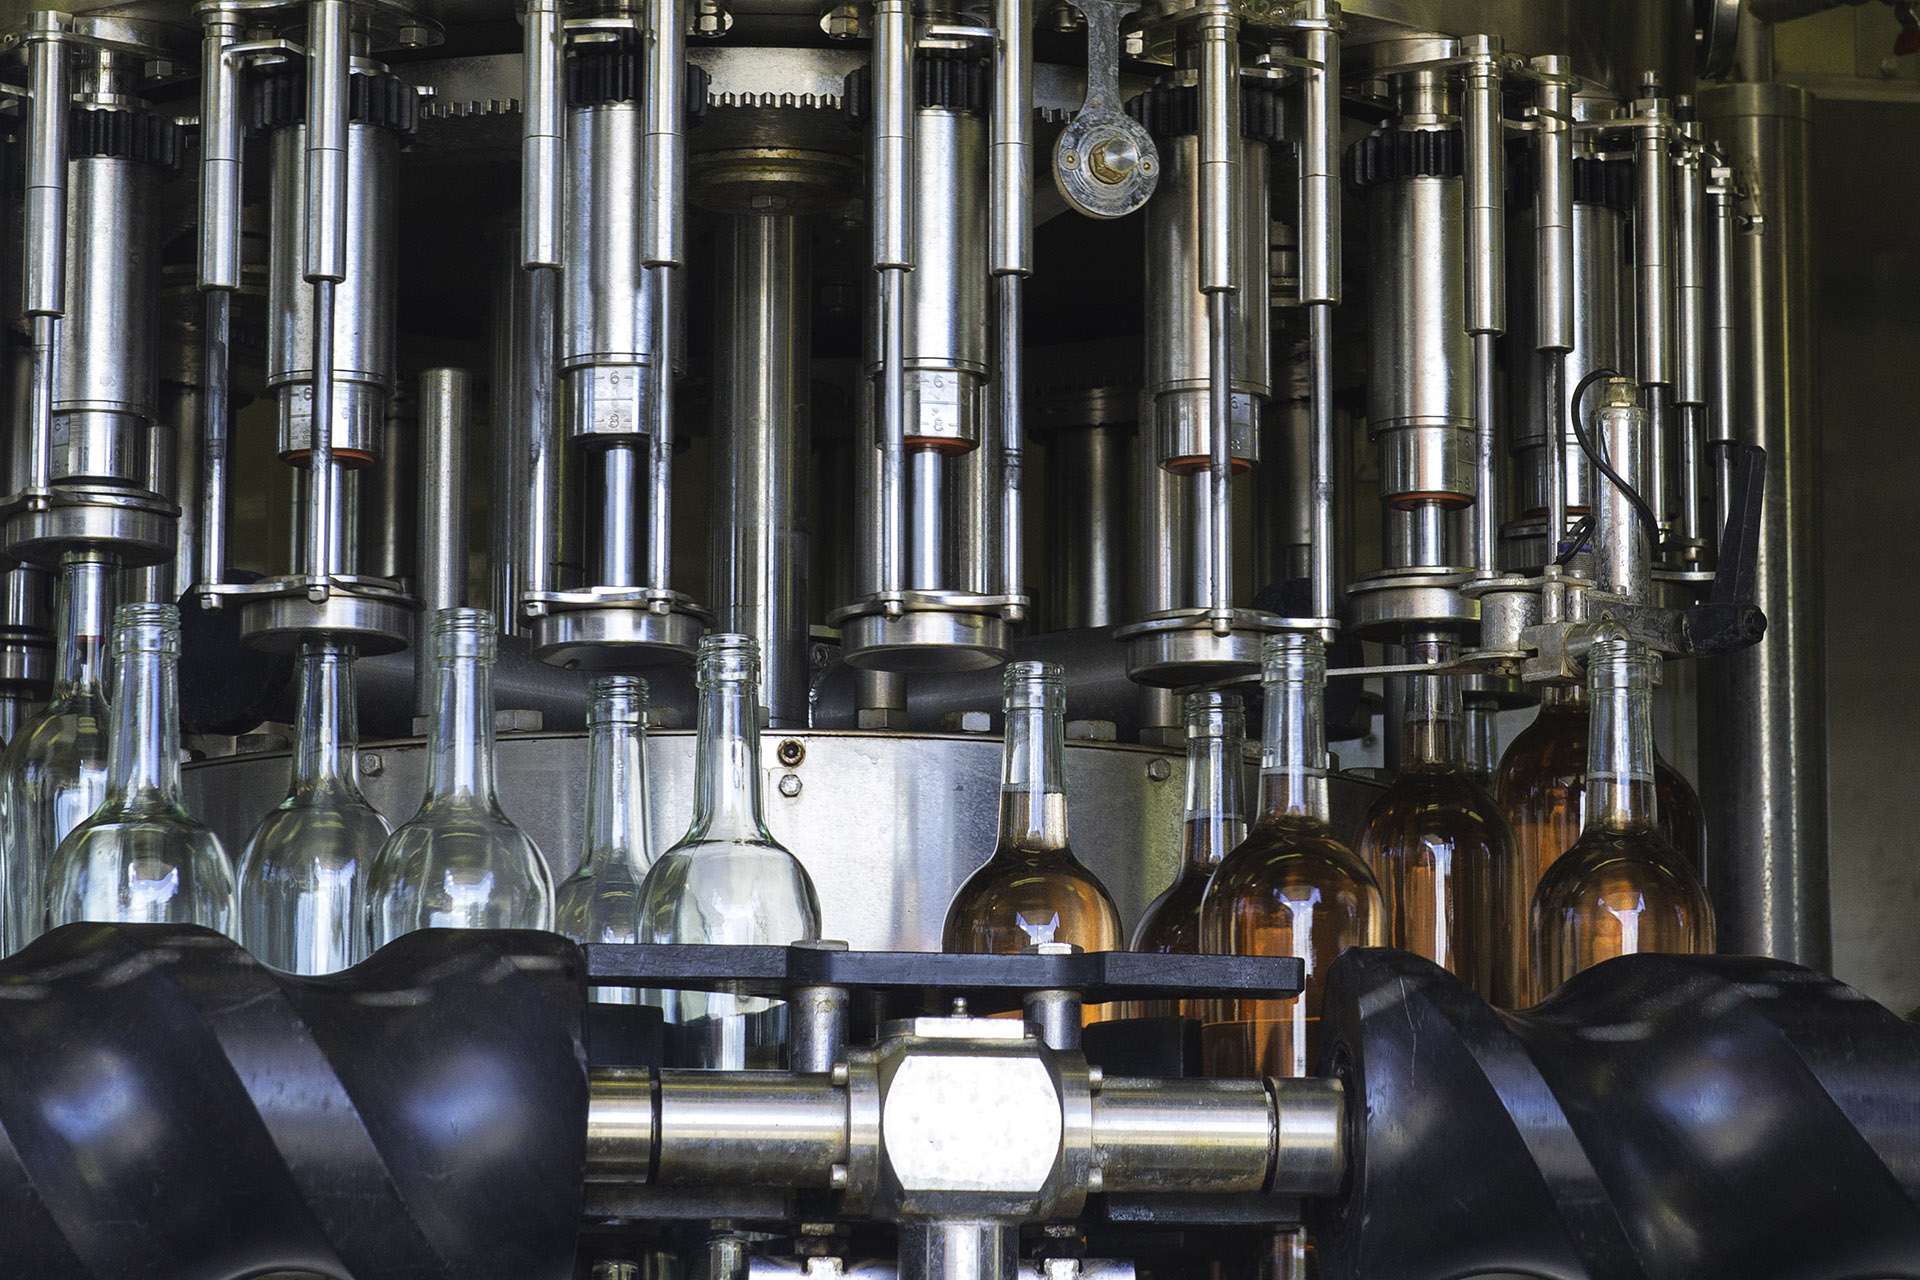 Curved machinery with empty bottles to the left and full bottles to the right